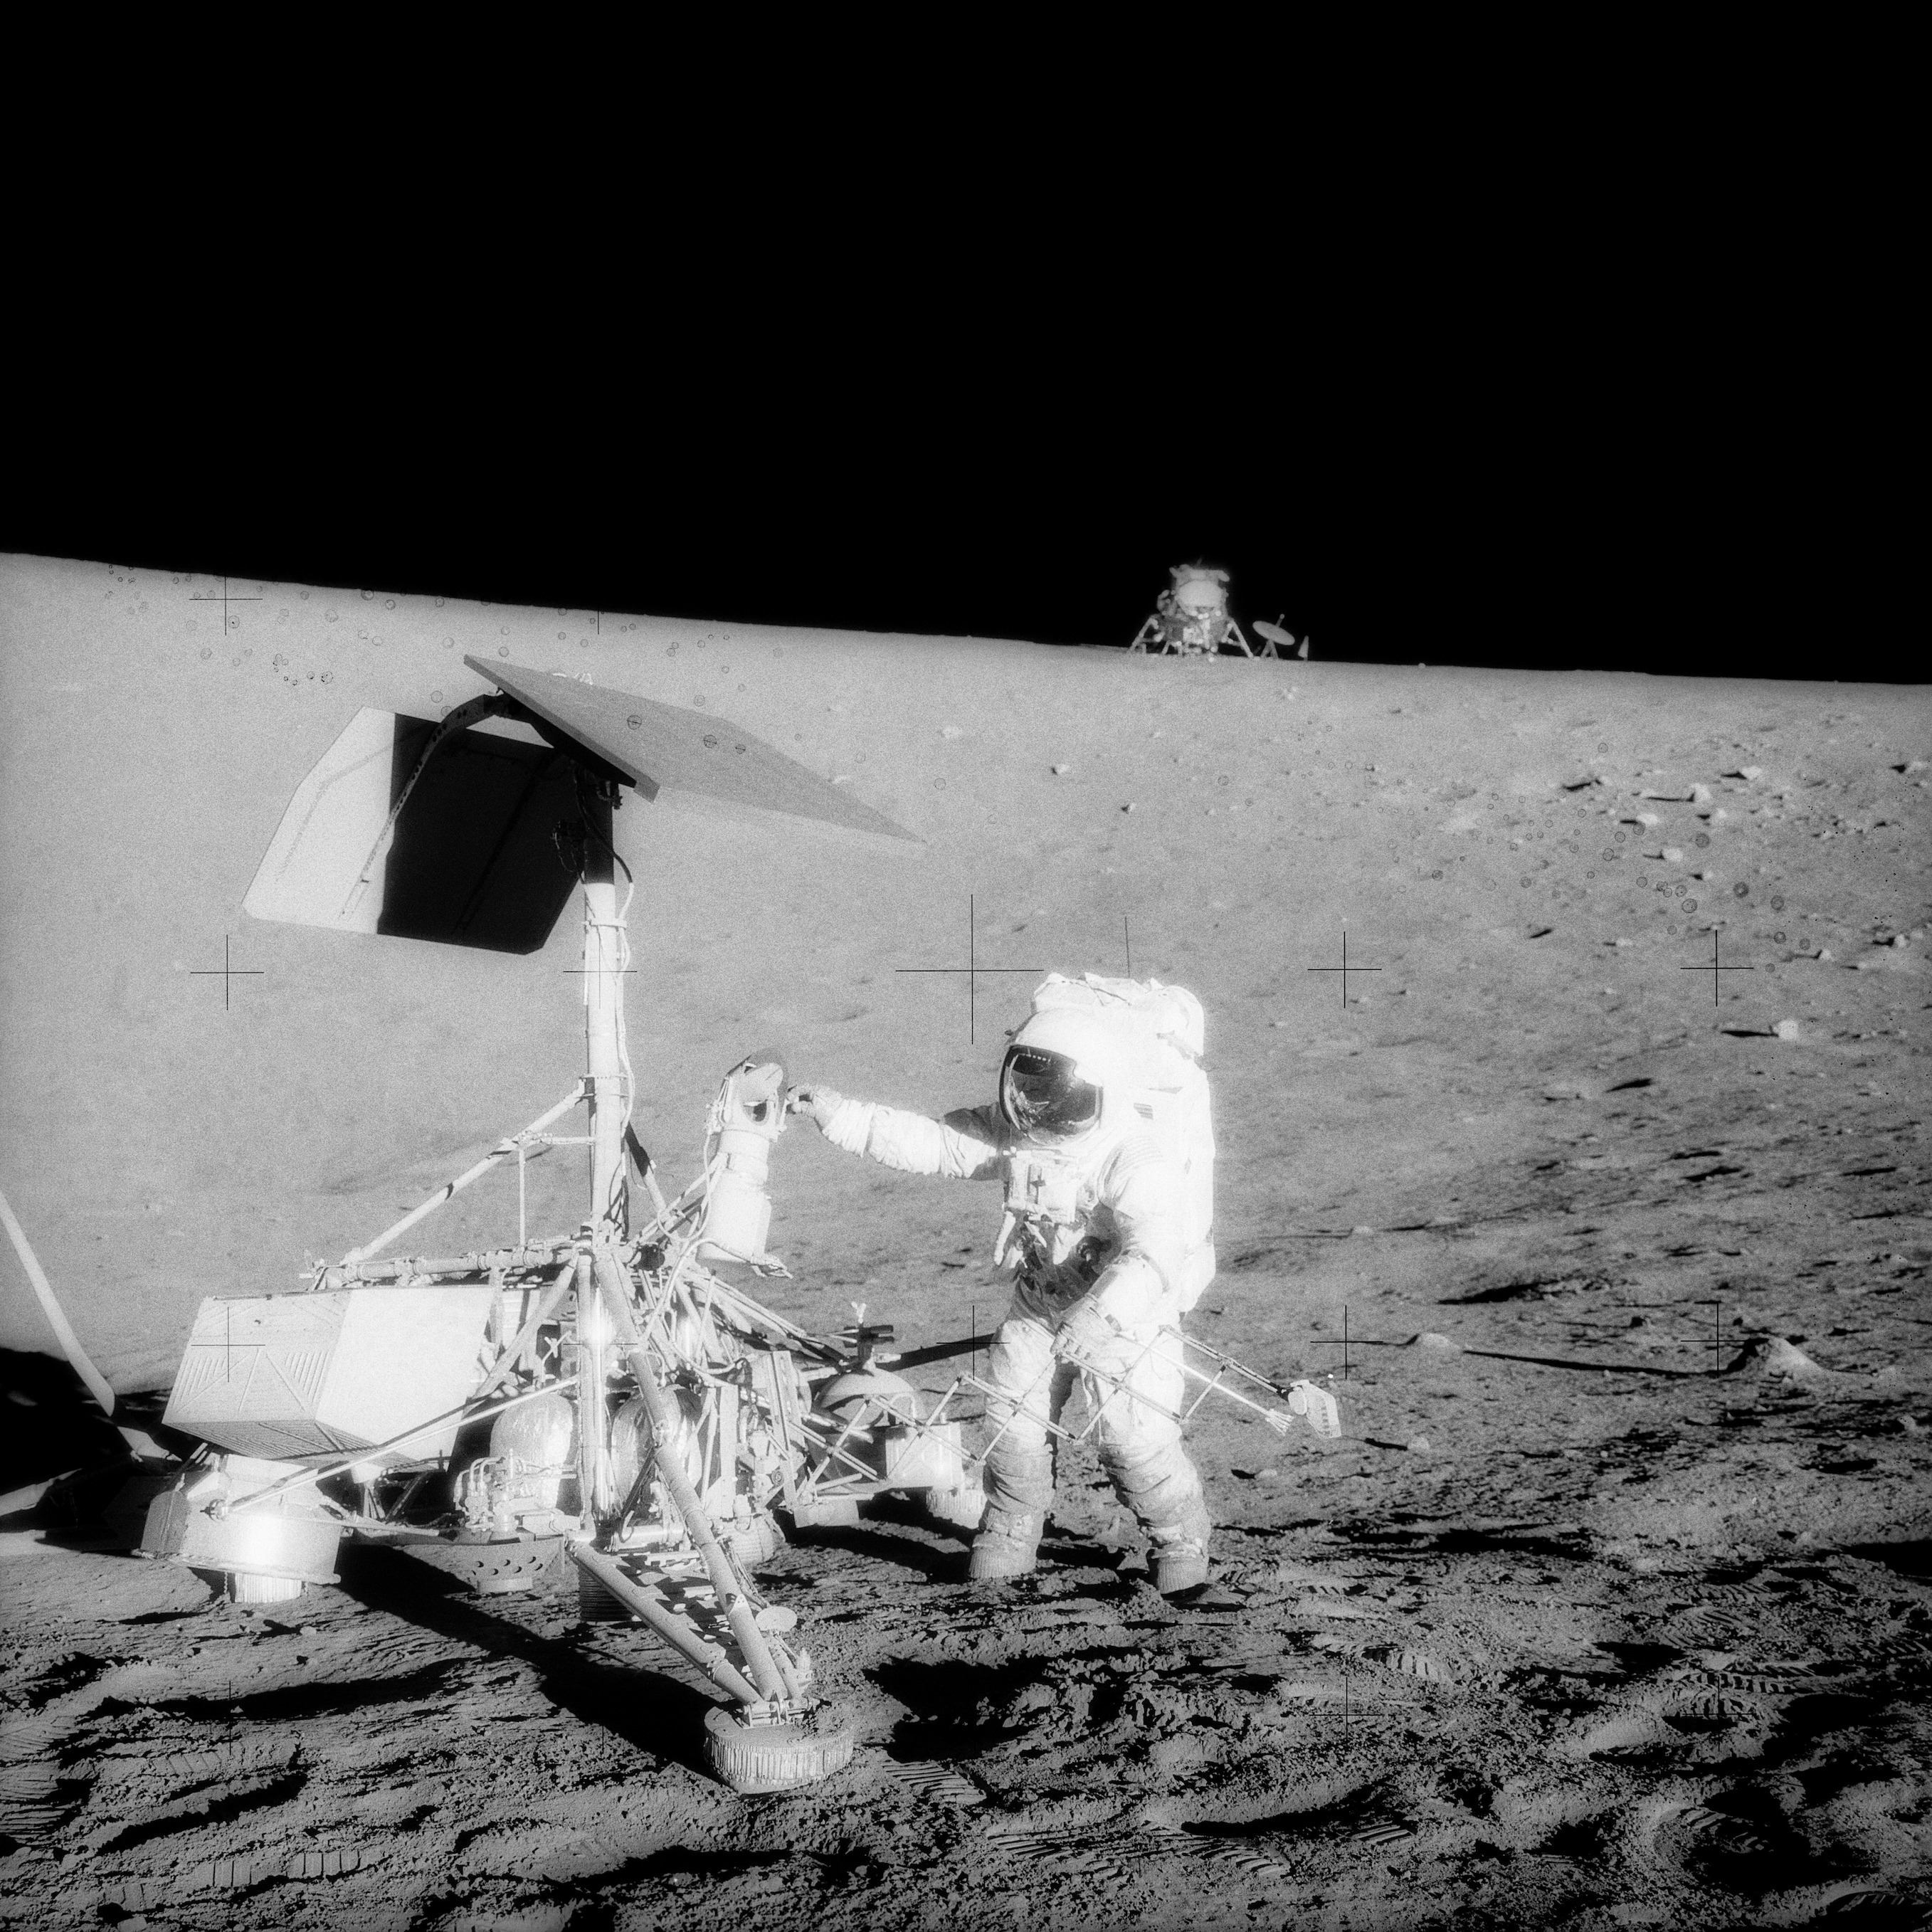 Al Bean photographed Pete Conrad at the Surveyor 3 spacecraft with the lunar module Intrepid on the horizon, November 20, 1969